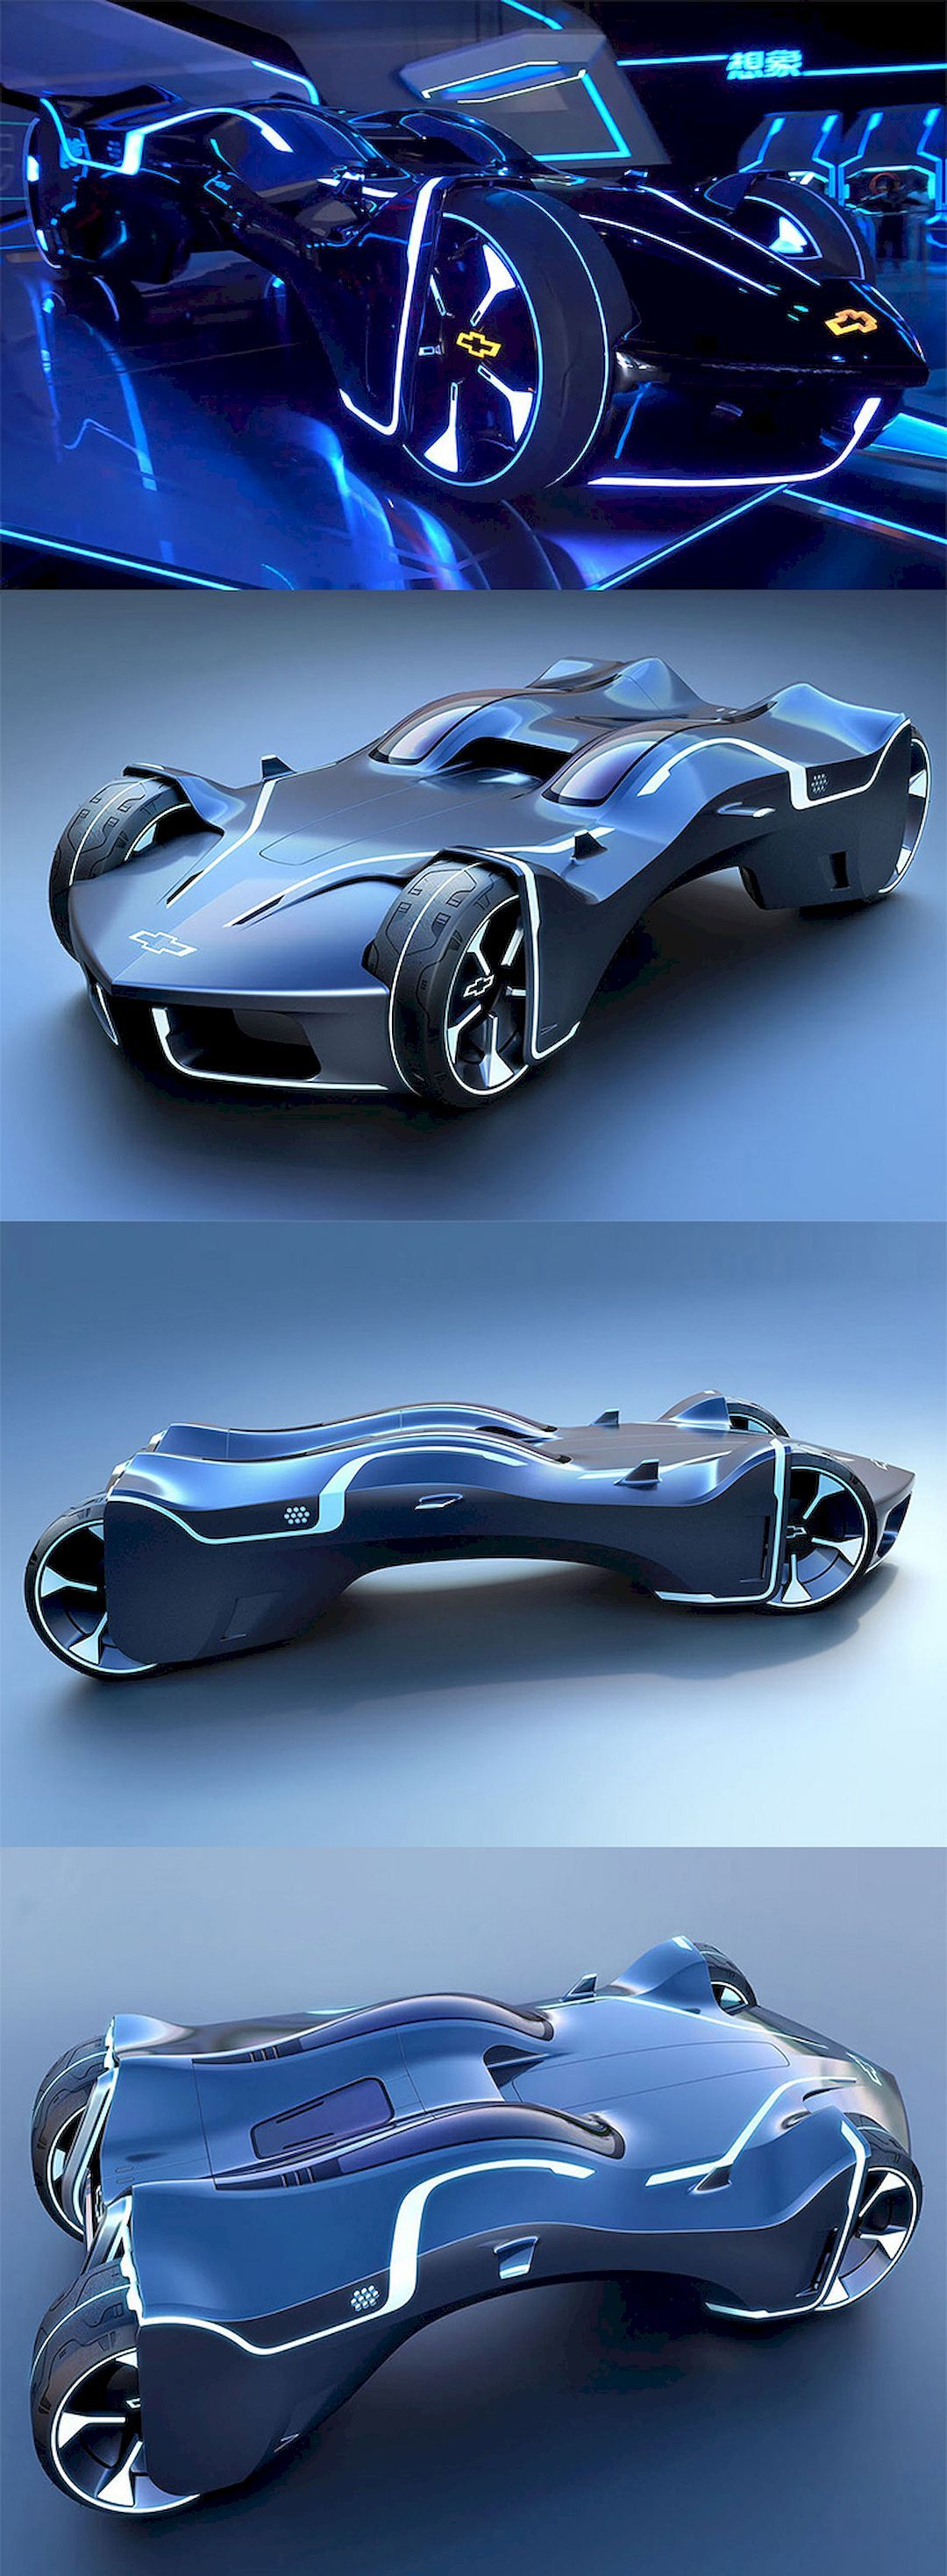 Top Upcoming Cars to Look Out For In 2020 | Design Listicle #conceptcars